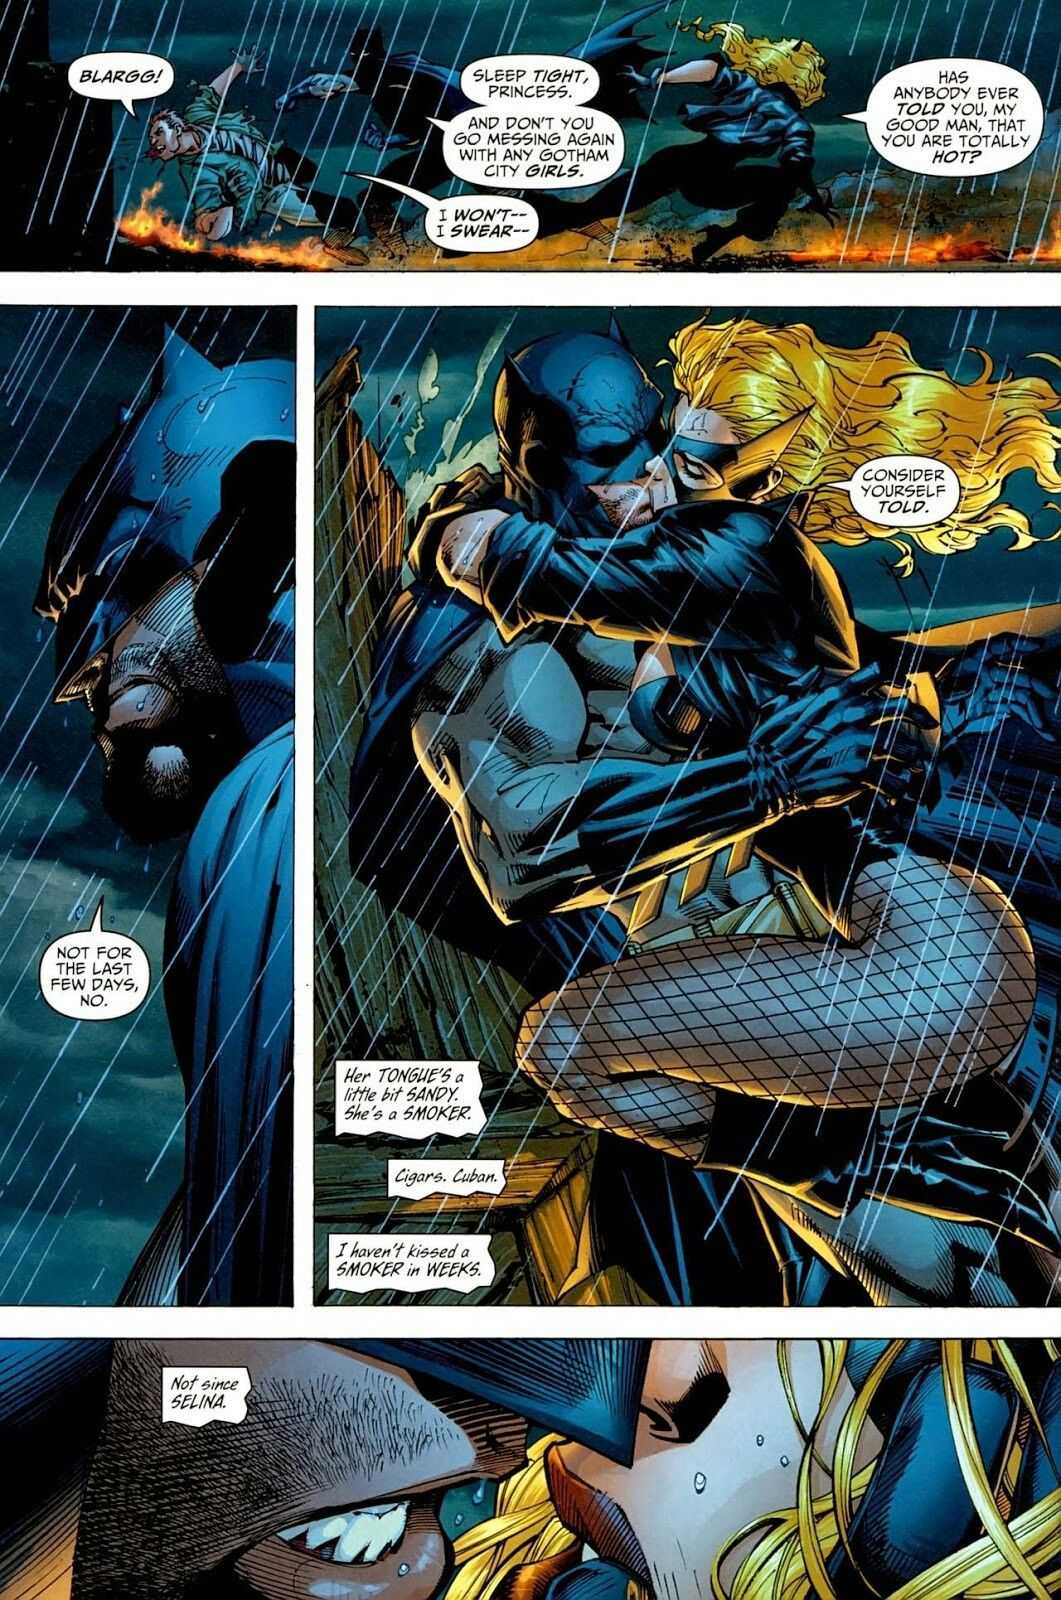 All Star Batman & Robin -Jim Lee : Batman & Black Canary | Batman and catwoman, Batman, Detective comics